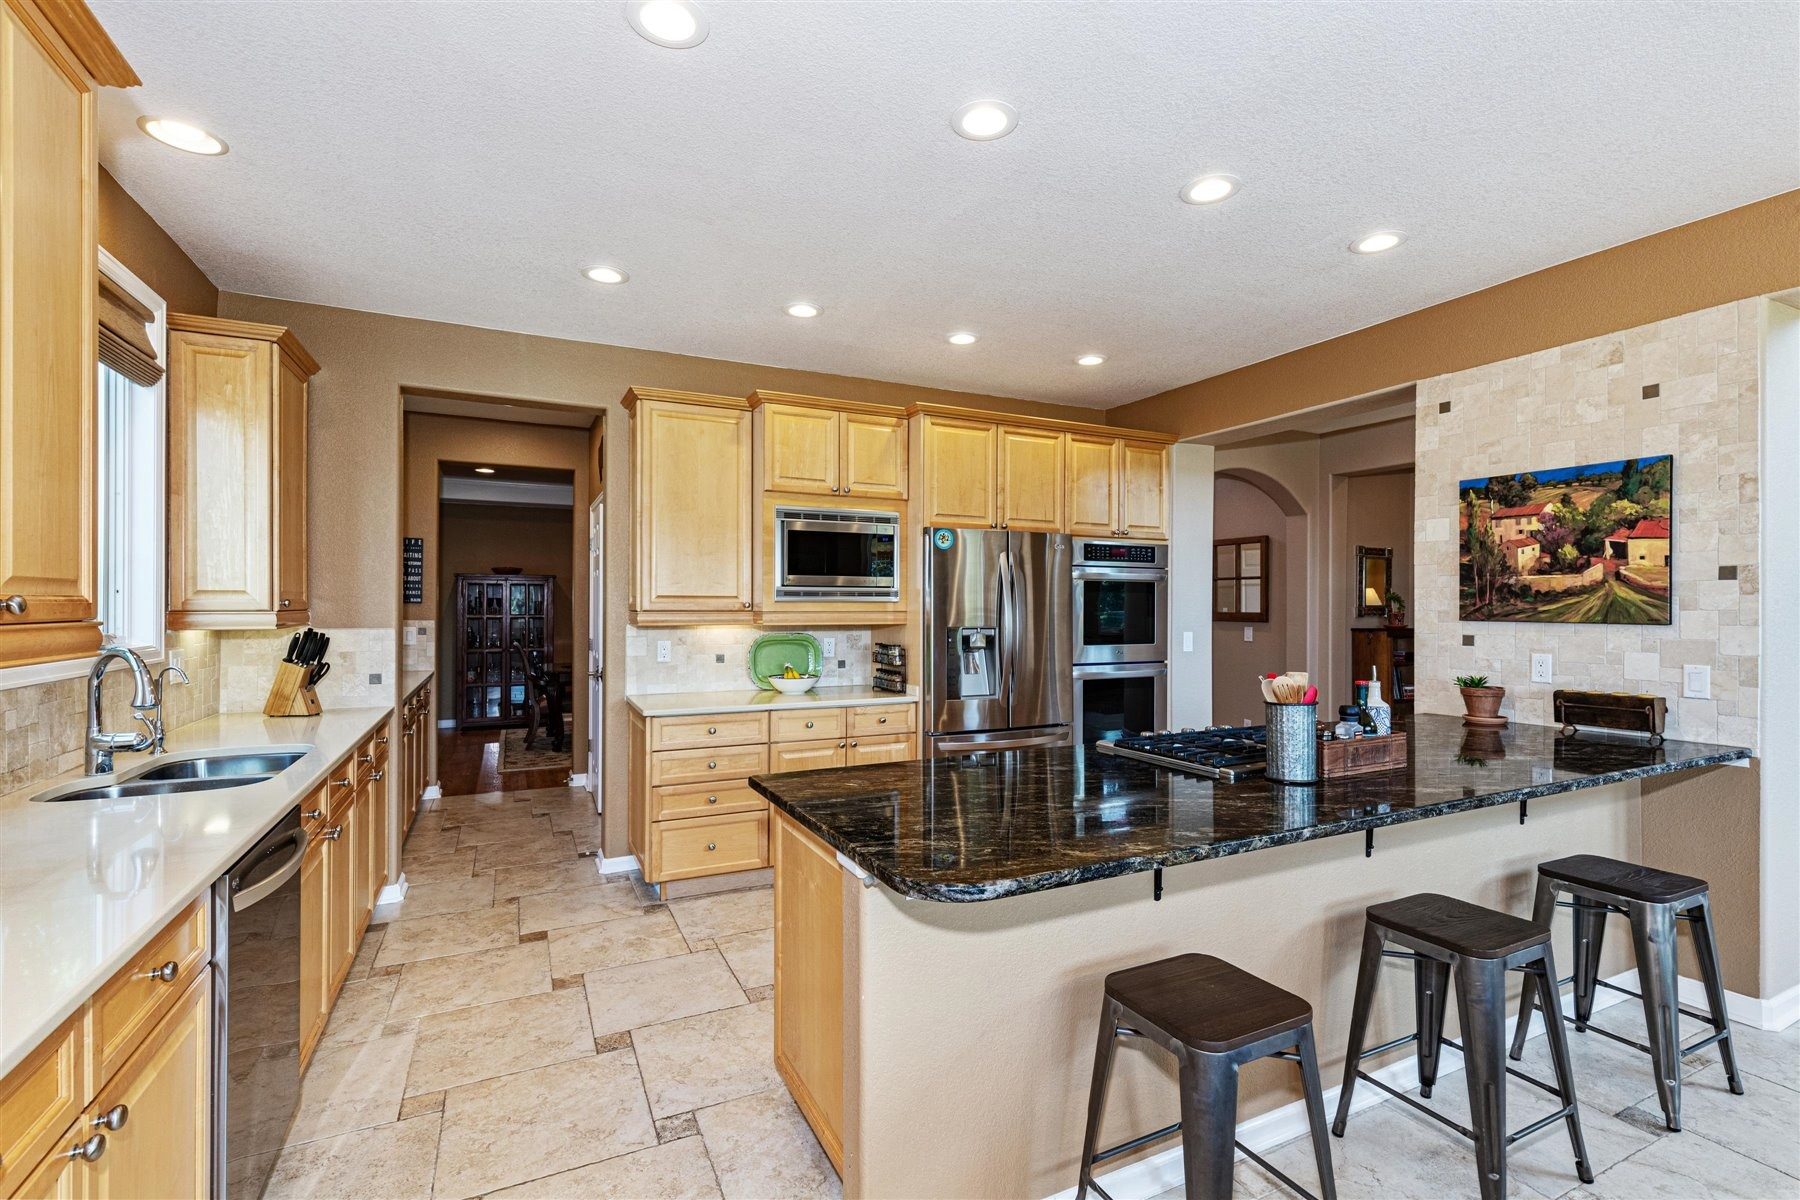 Large Tile Floors and Expansive Countertops